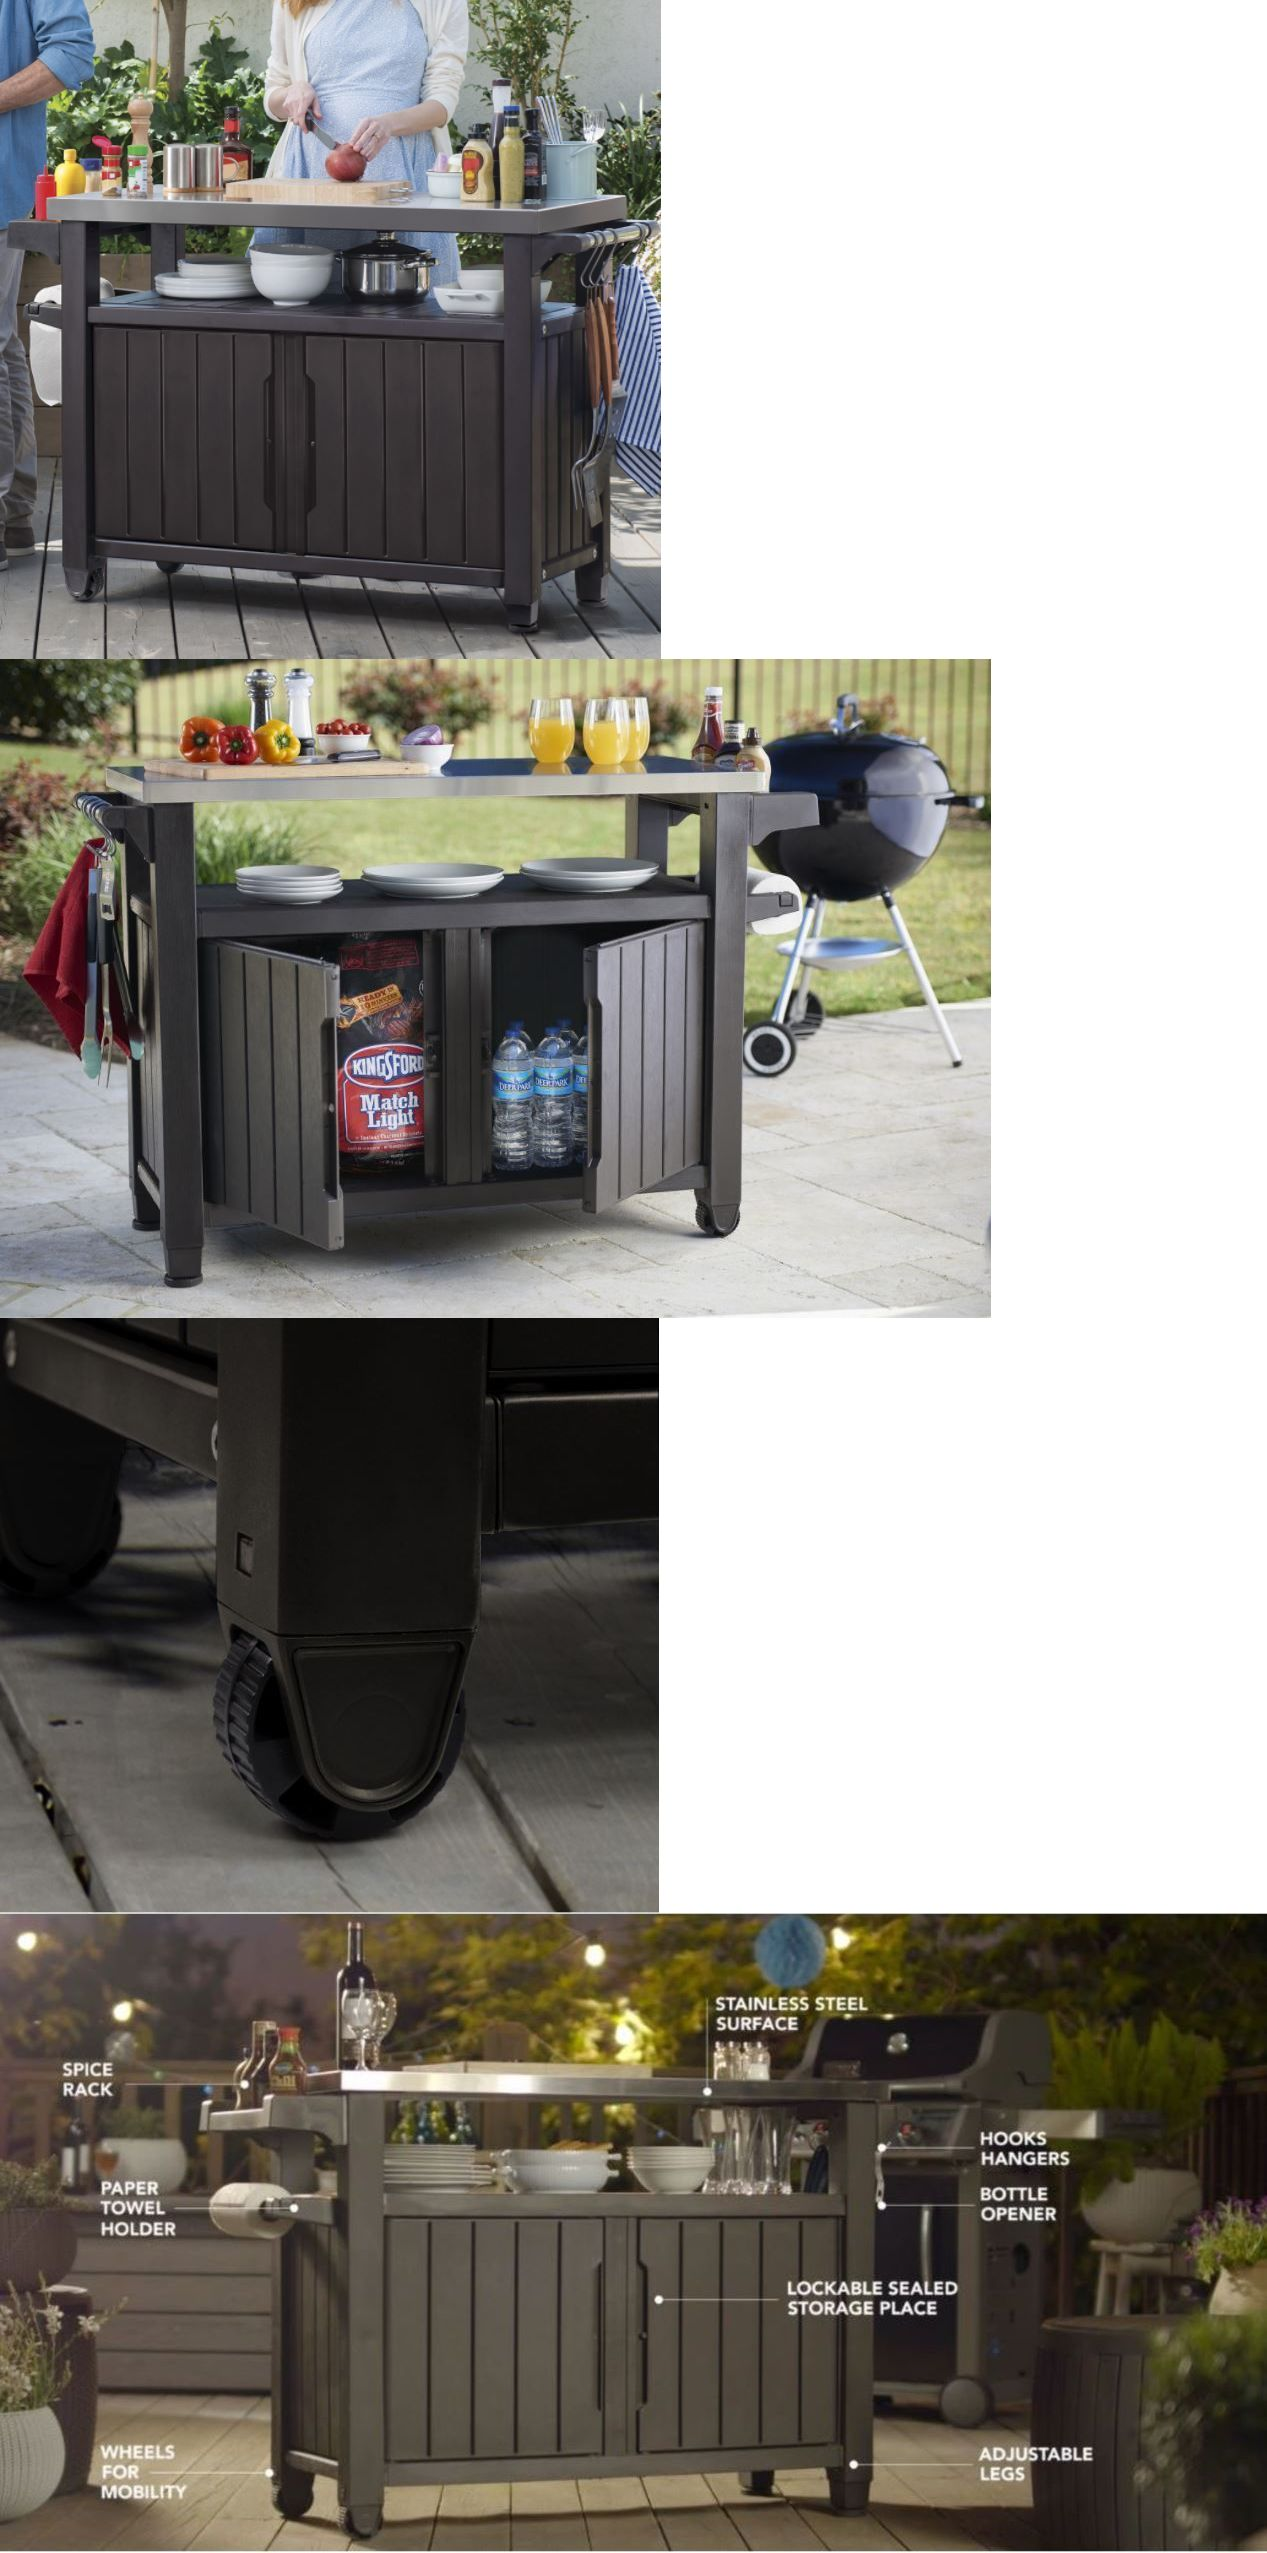 Other outdoor cooking and eating outdoor kitchen island